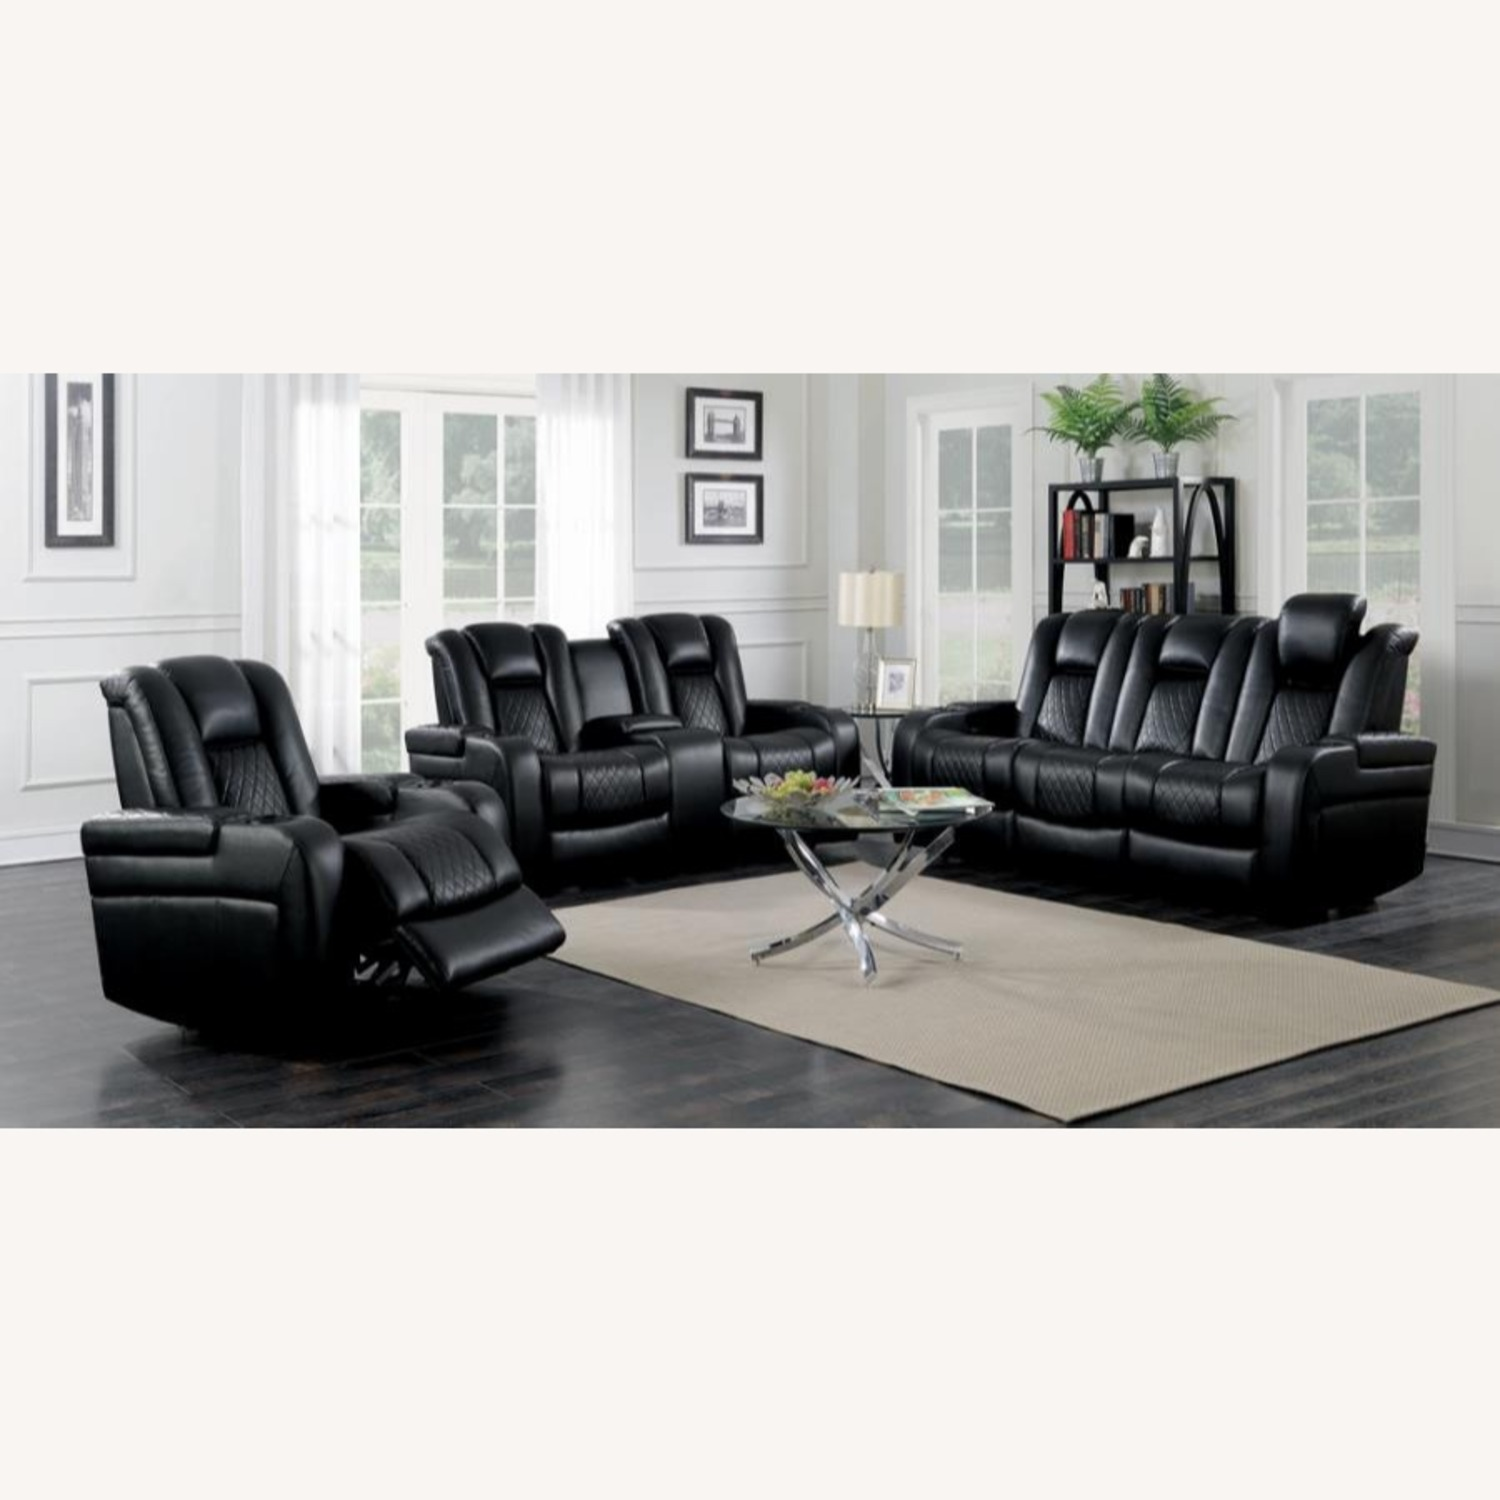 Power Recliner In Black Performance Leatherette - image-9